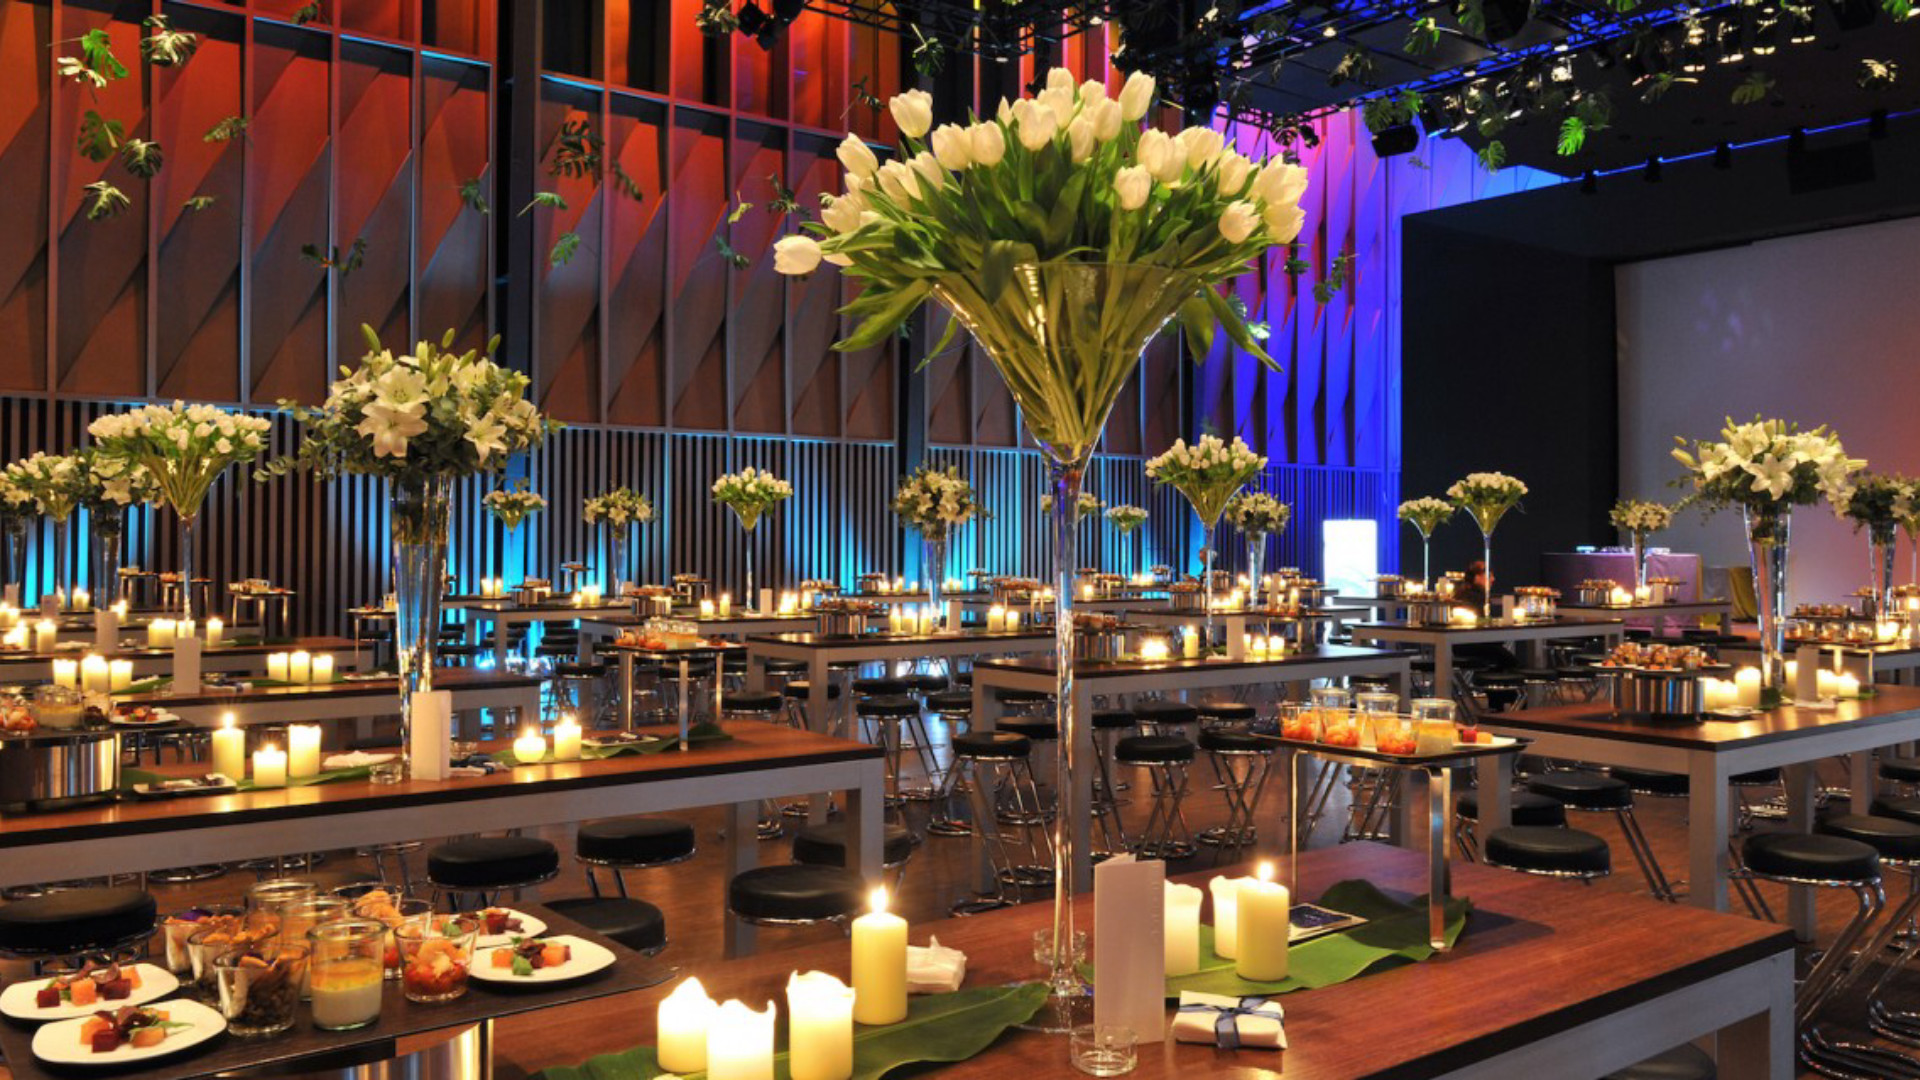 Trafo Baden │Congress. Hotels. Catering.